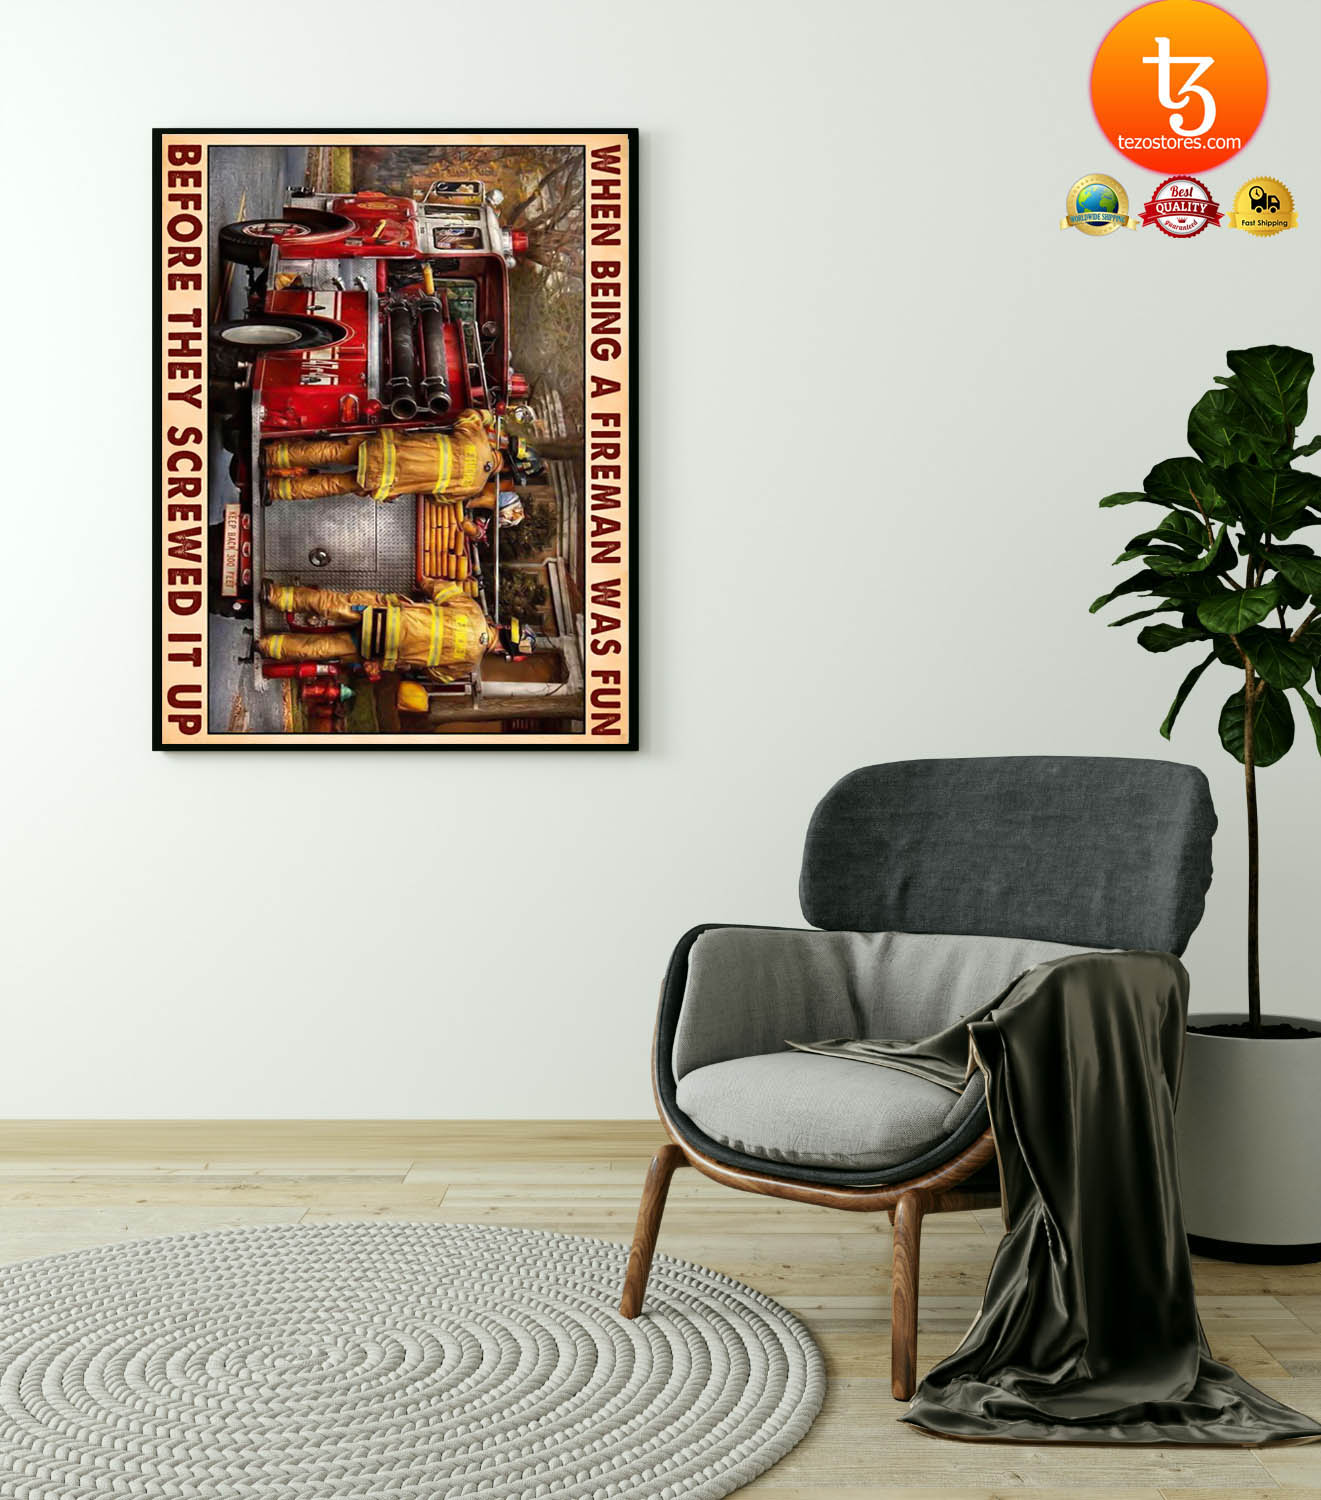 When being a fireman was fun before they screwed it up poster 23